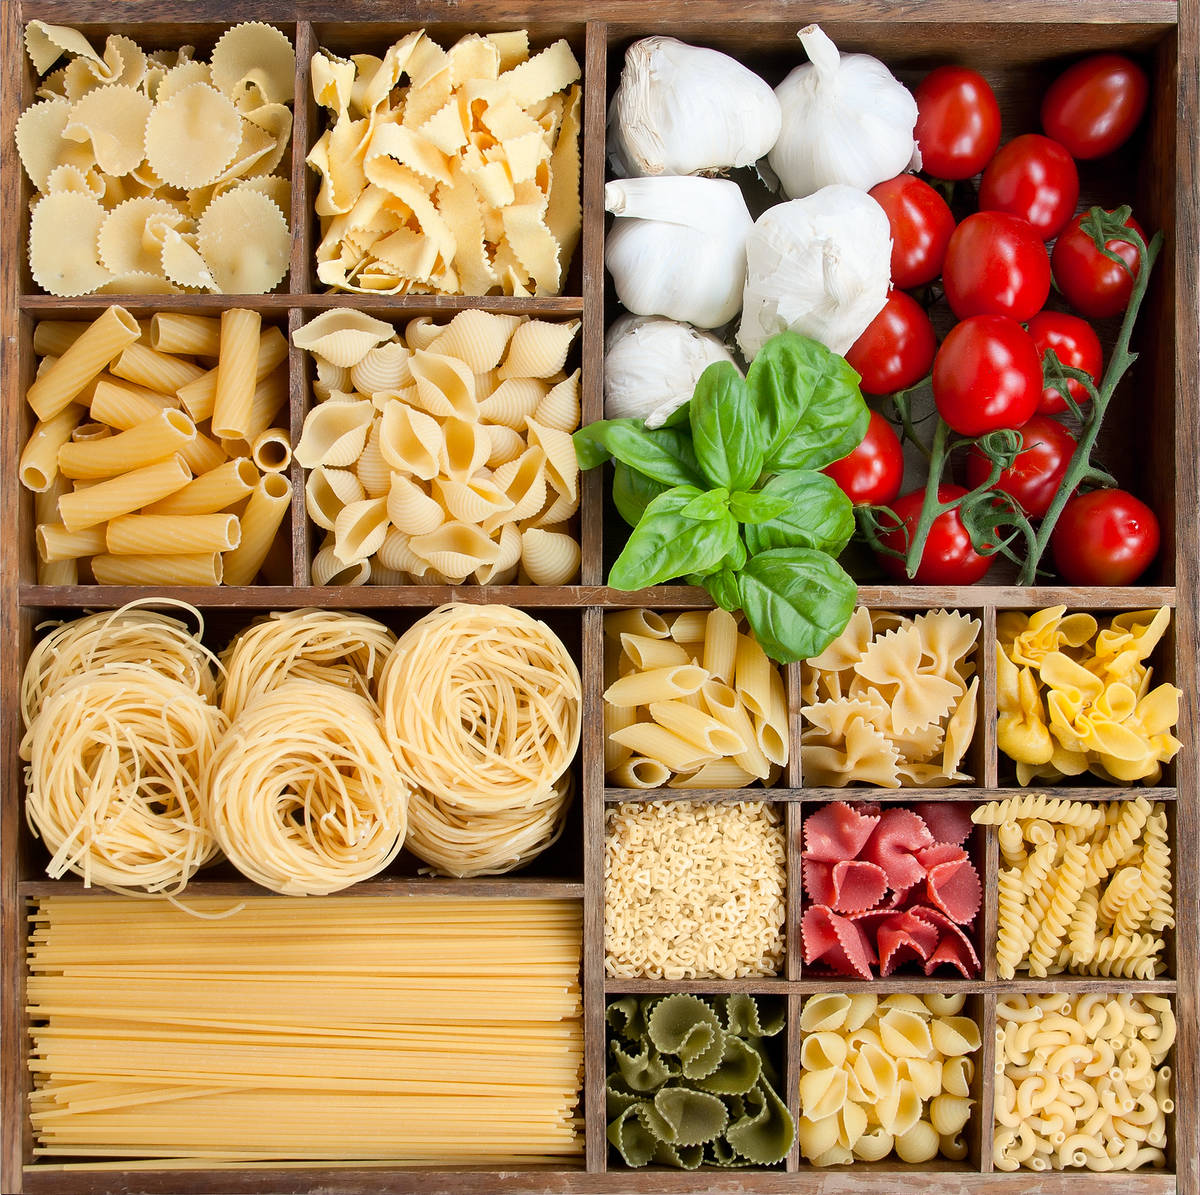 Assorted pastas in wooden box with cooking ingredients